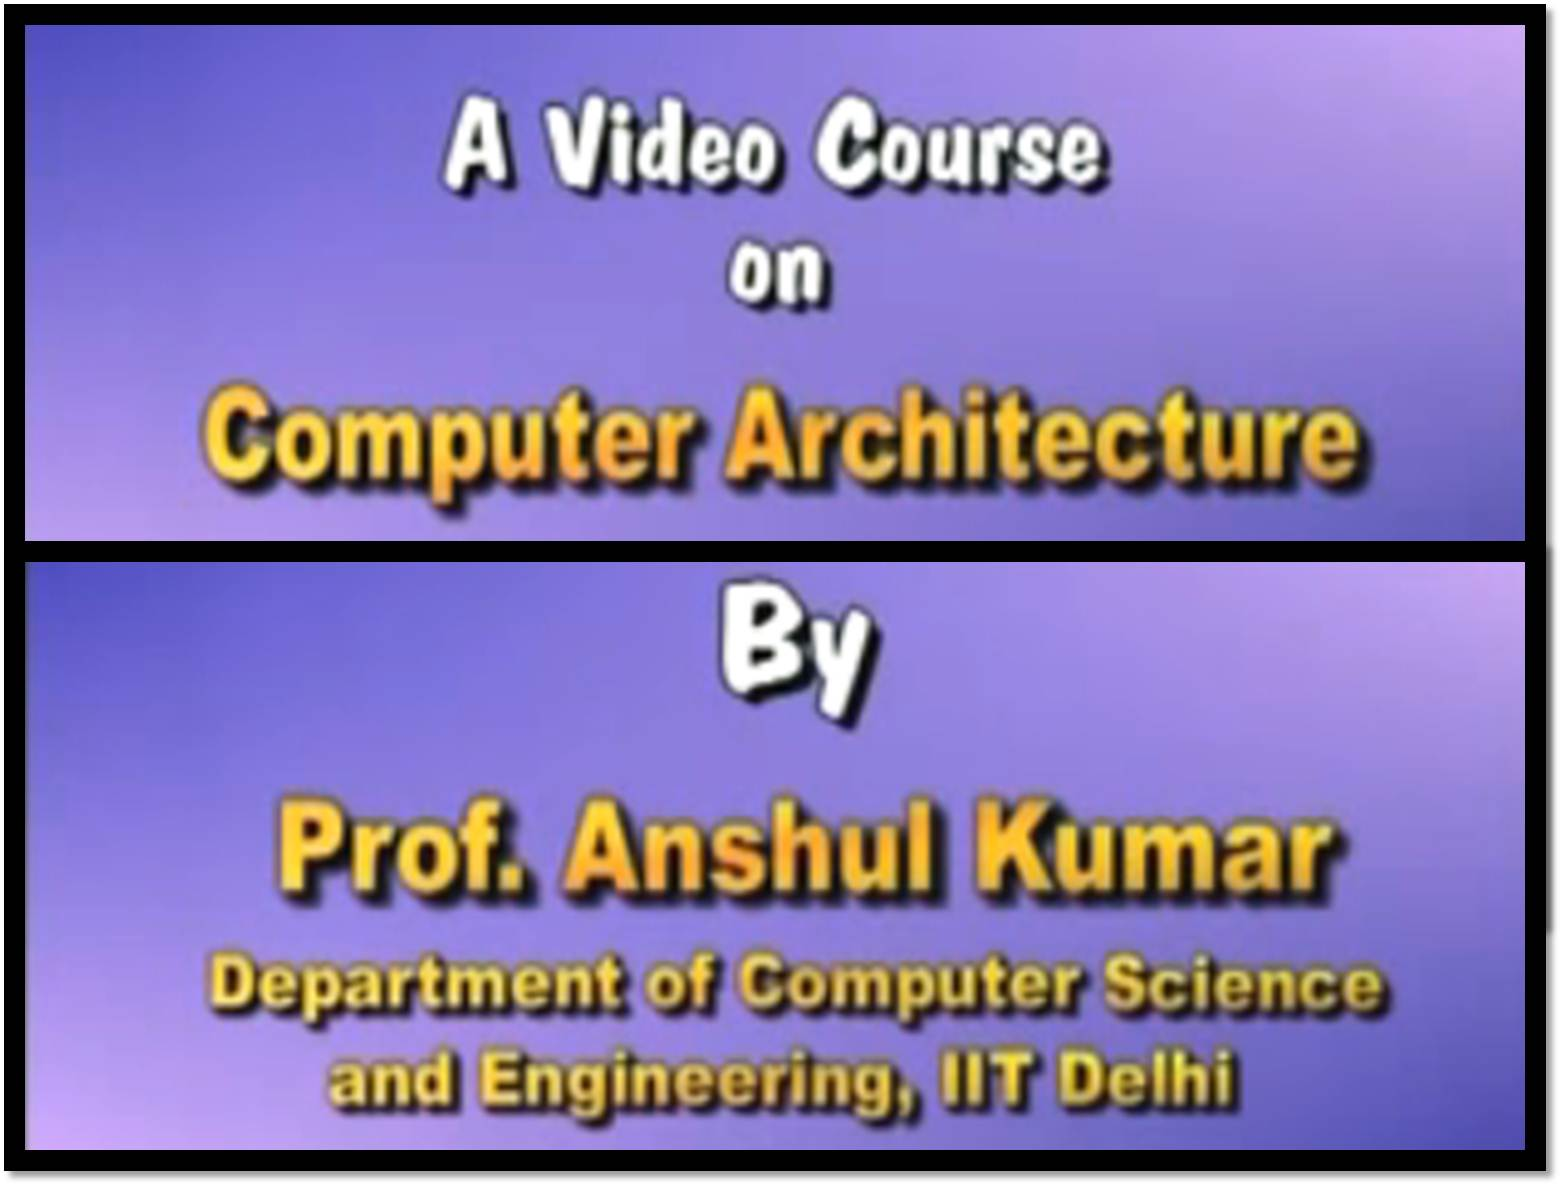 http://study.aisectonline.com/images/SubCategory/Lecture Series on Computer Architecture by Prof. Anshul Kumar, IIT Delhi.jpg